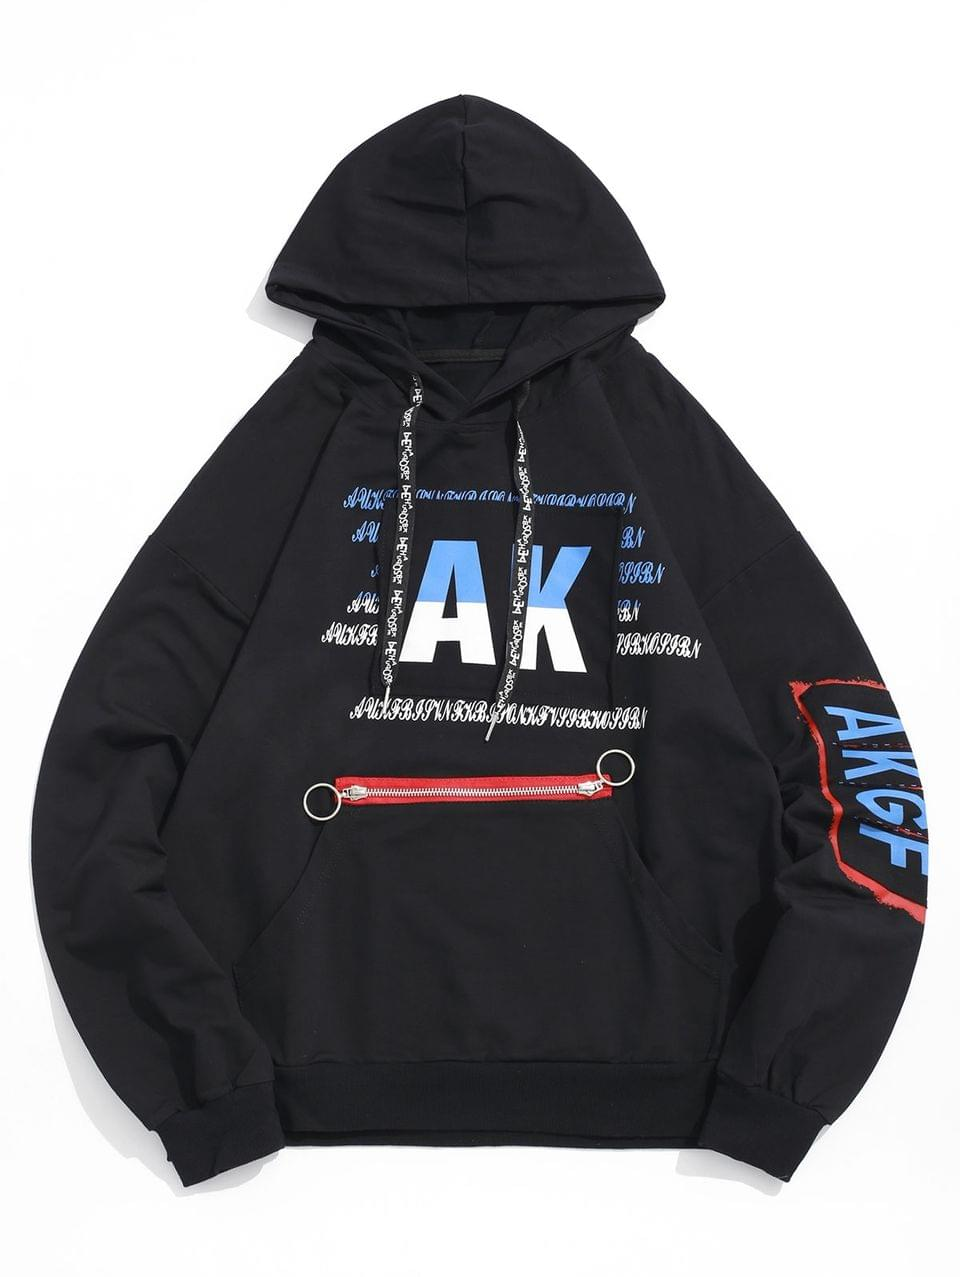 Men's Letter Graphic Print Ripped Patchwork Kangaroo Pocket Hoodie - Black 2xl